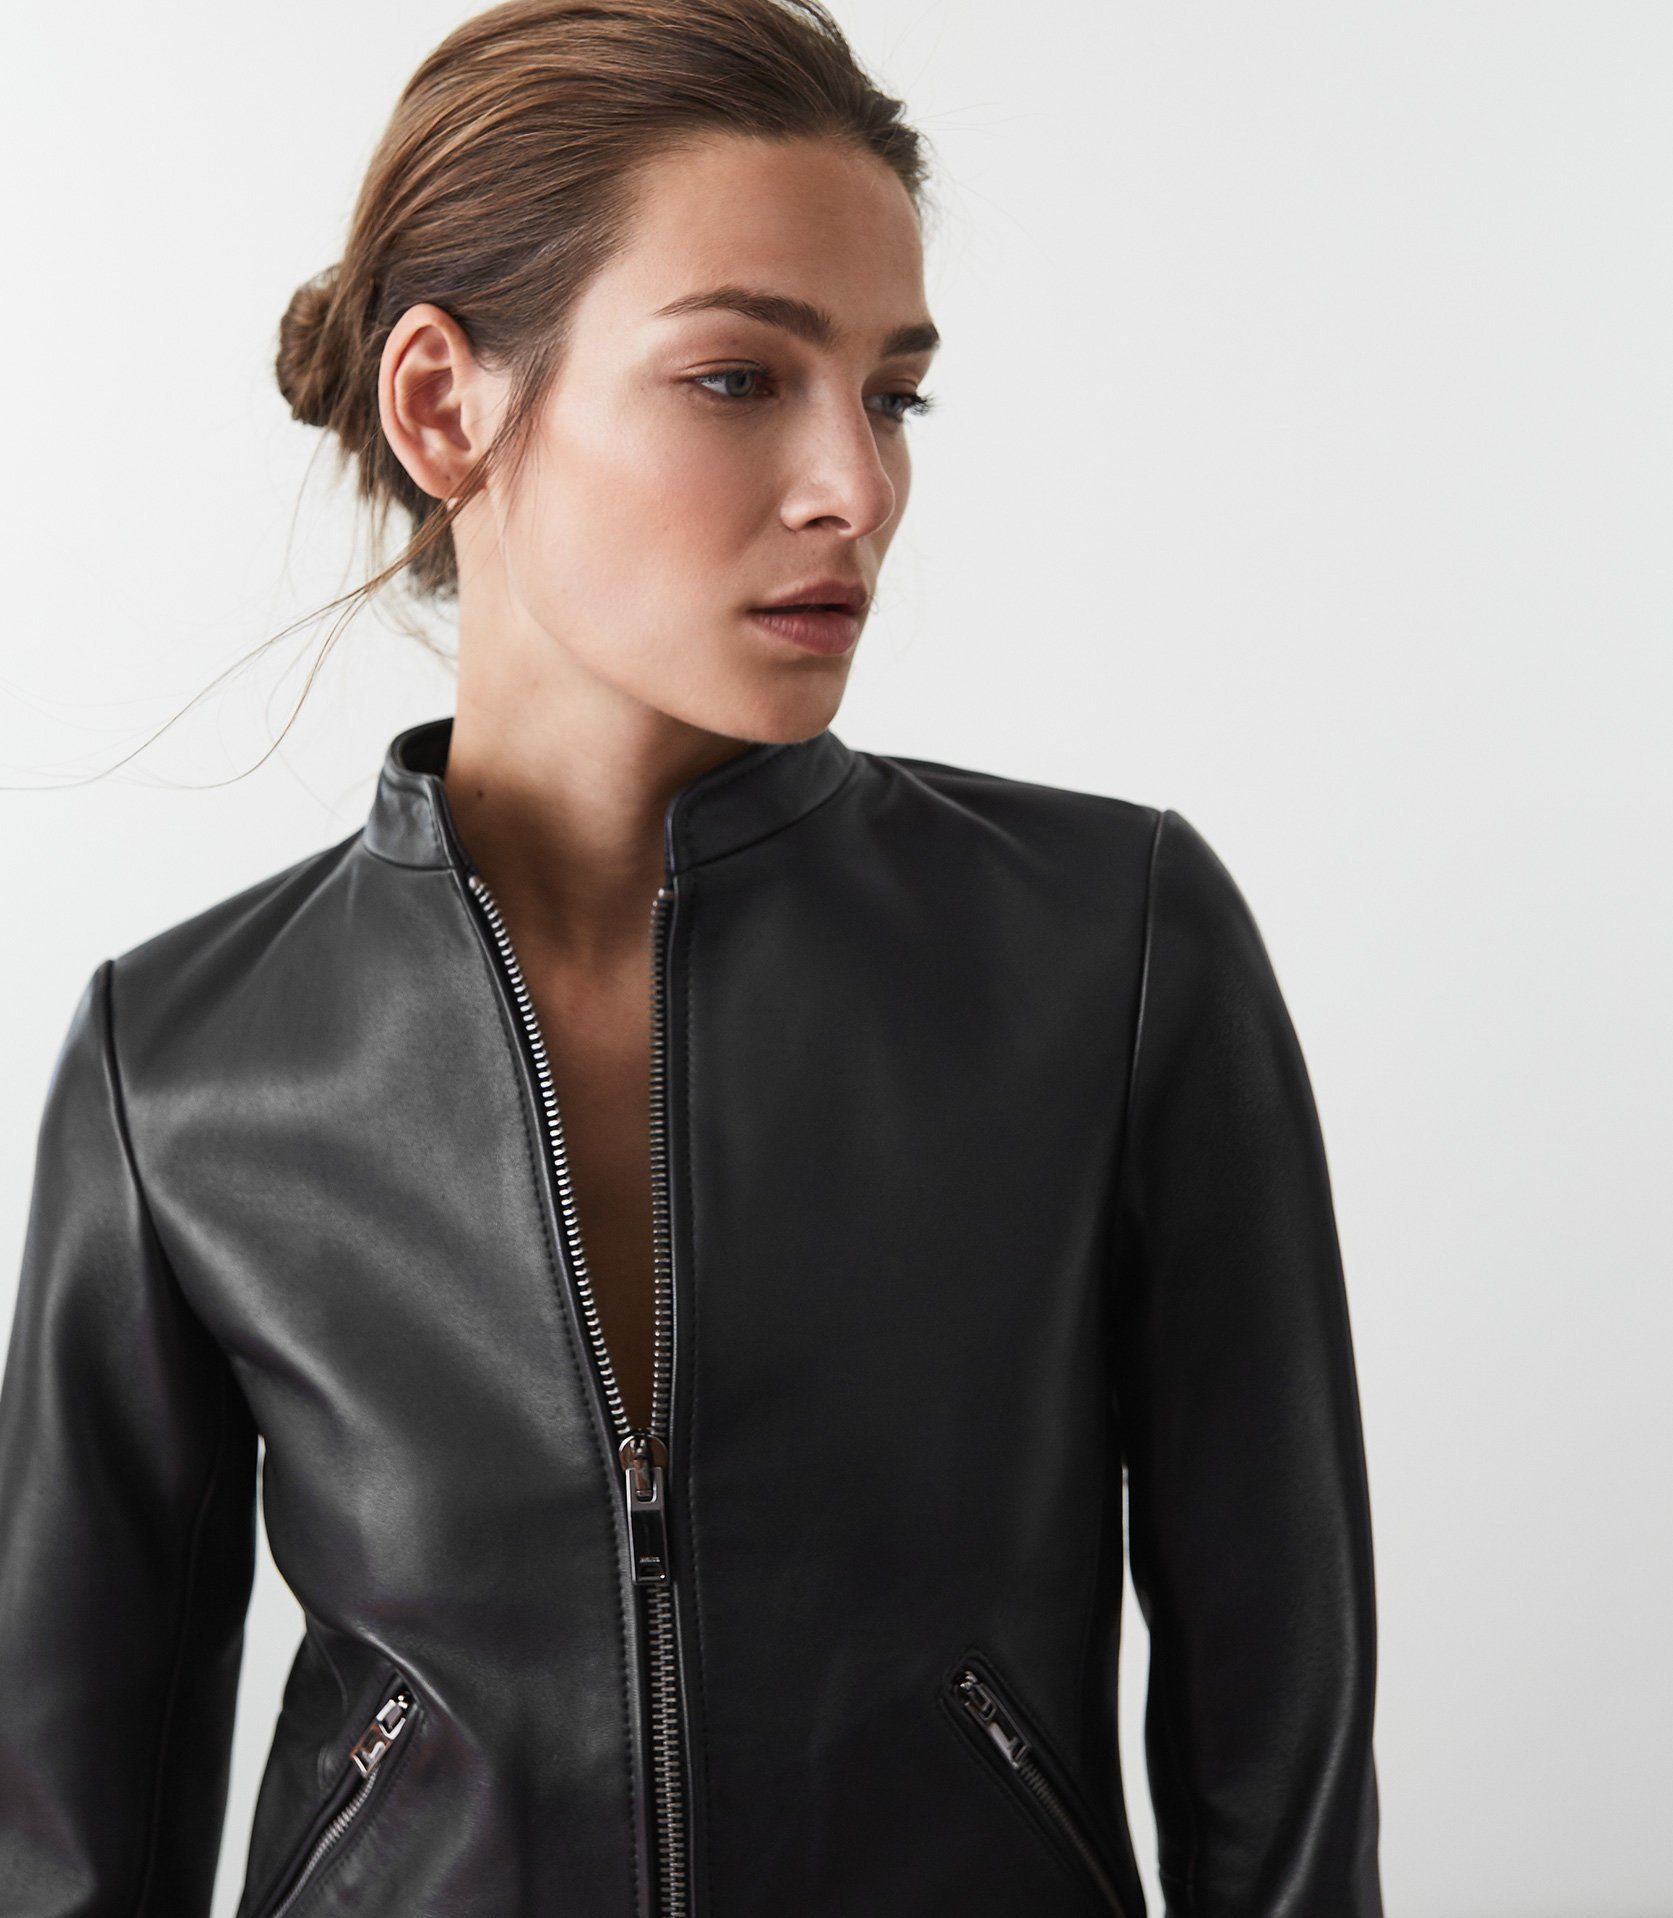 Aries Leather Jacket Reiss Leather Jackets Women Buy Leather Jacket Leather Jacket [ 1918 x 1673 Pixel ]